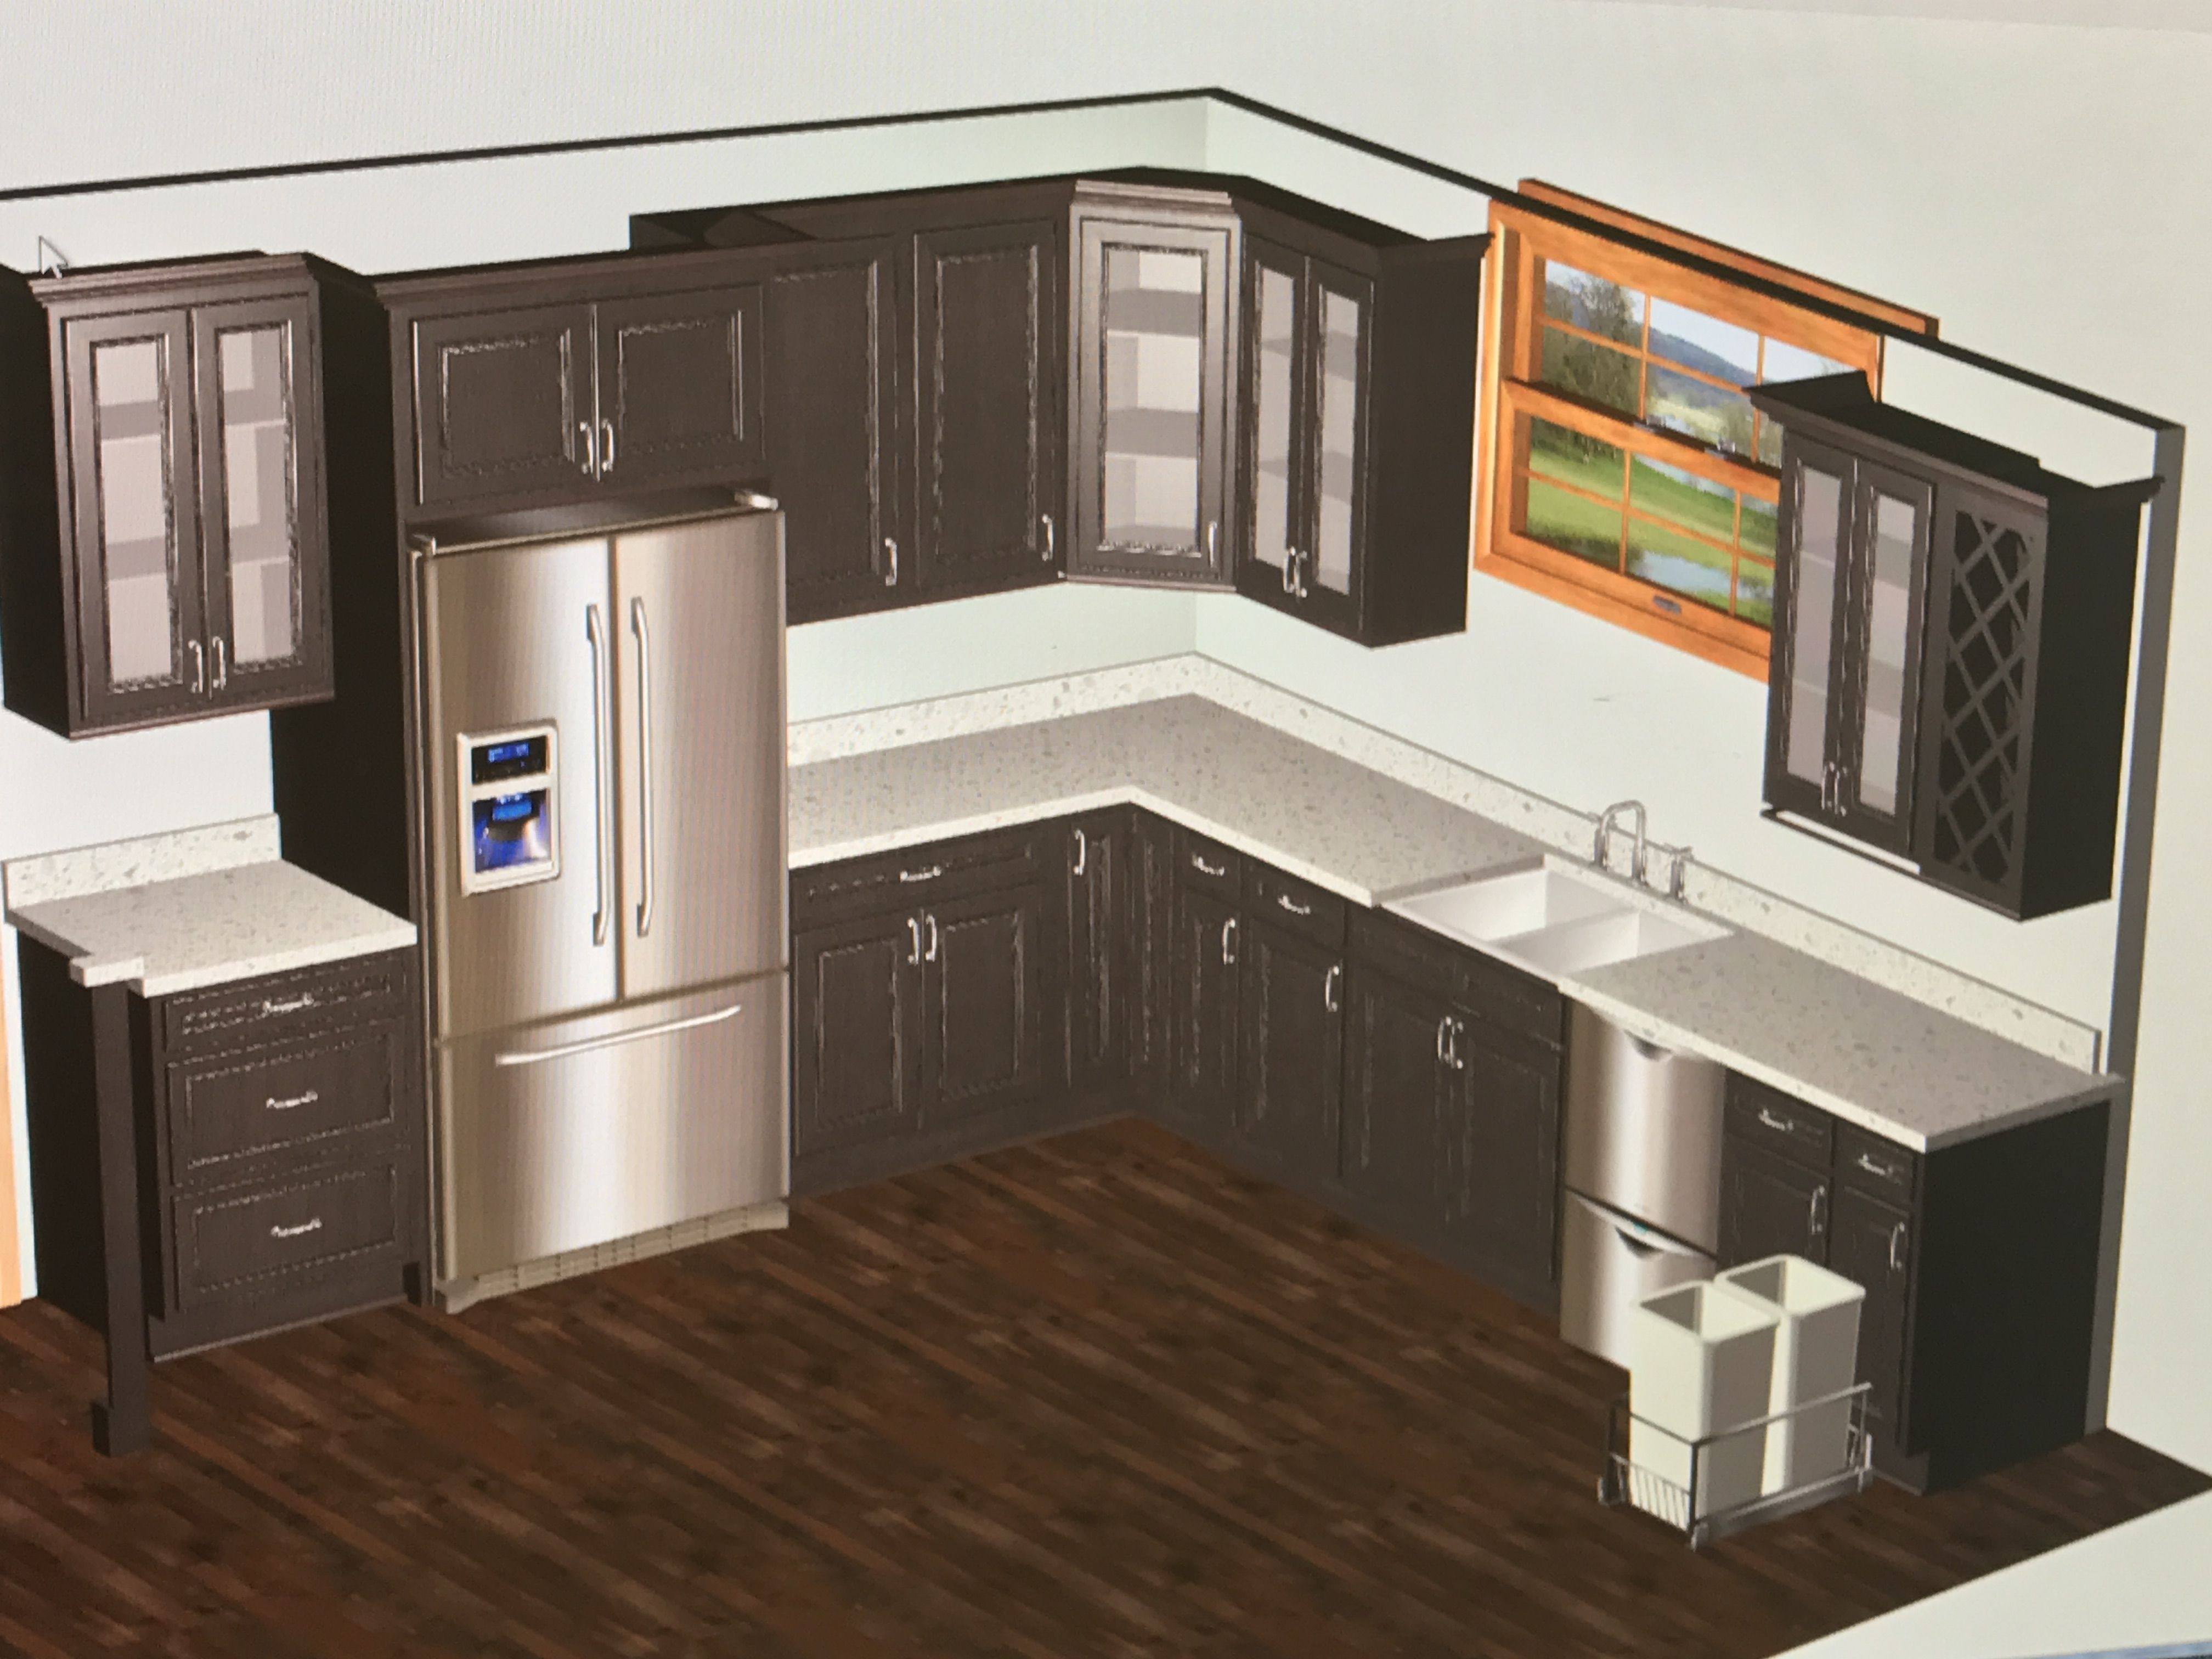 Premium Bathroom And Kitchen Cabinets In Plano Tx Quality Kitchen Cabinets Cabinets To Go Kitchen Cabinets